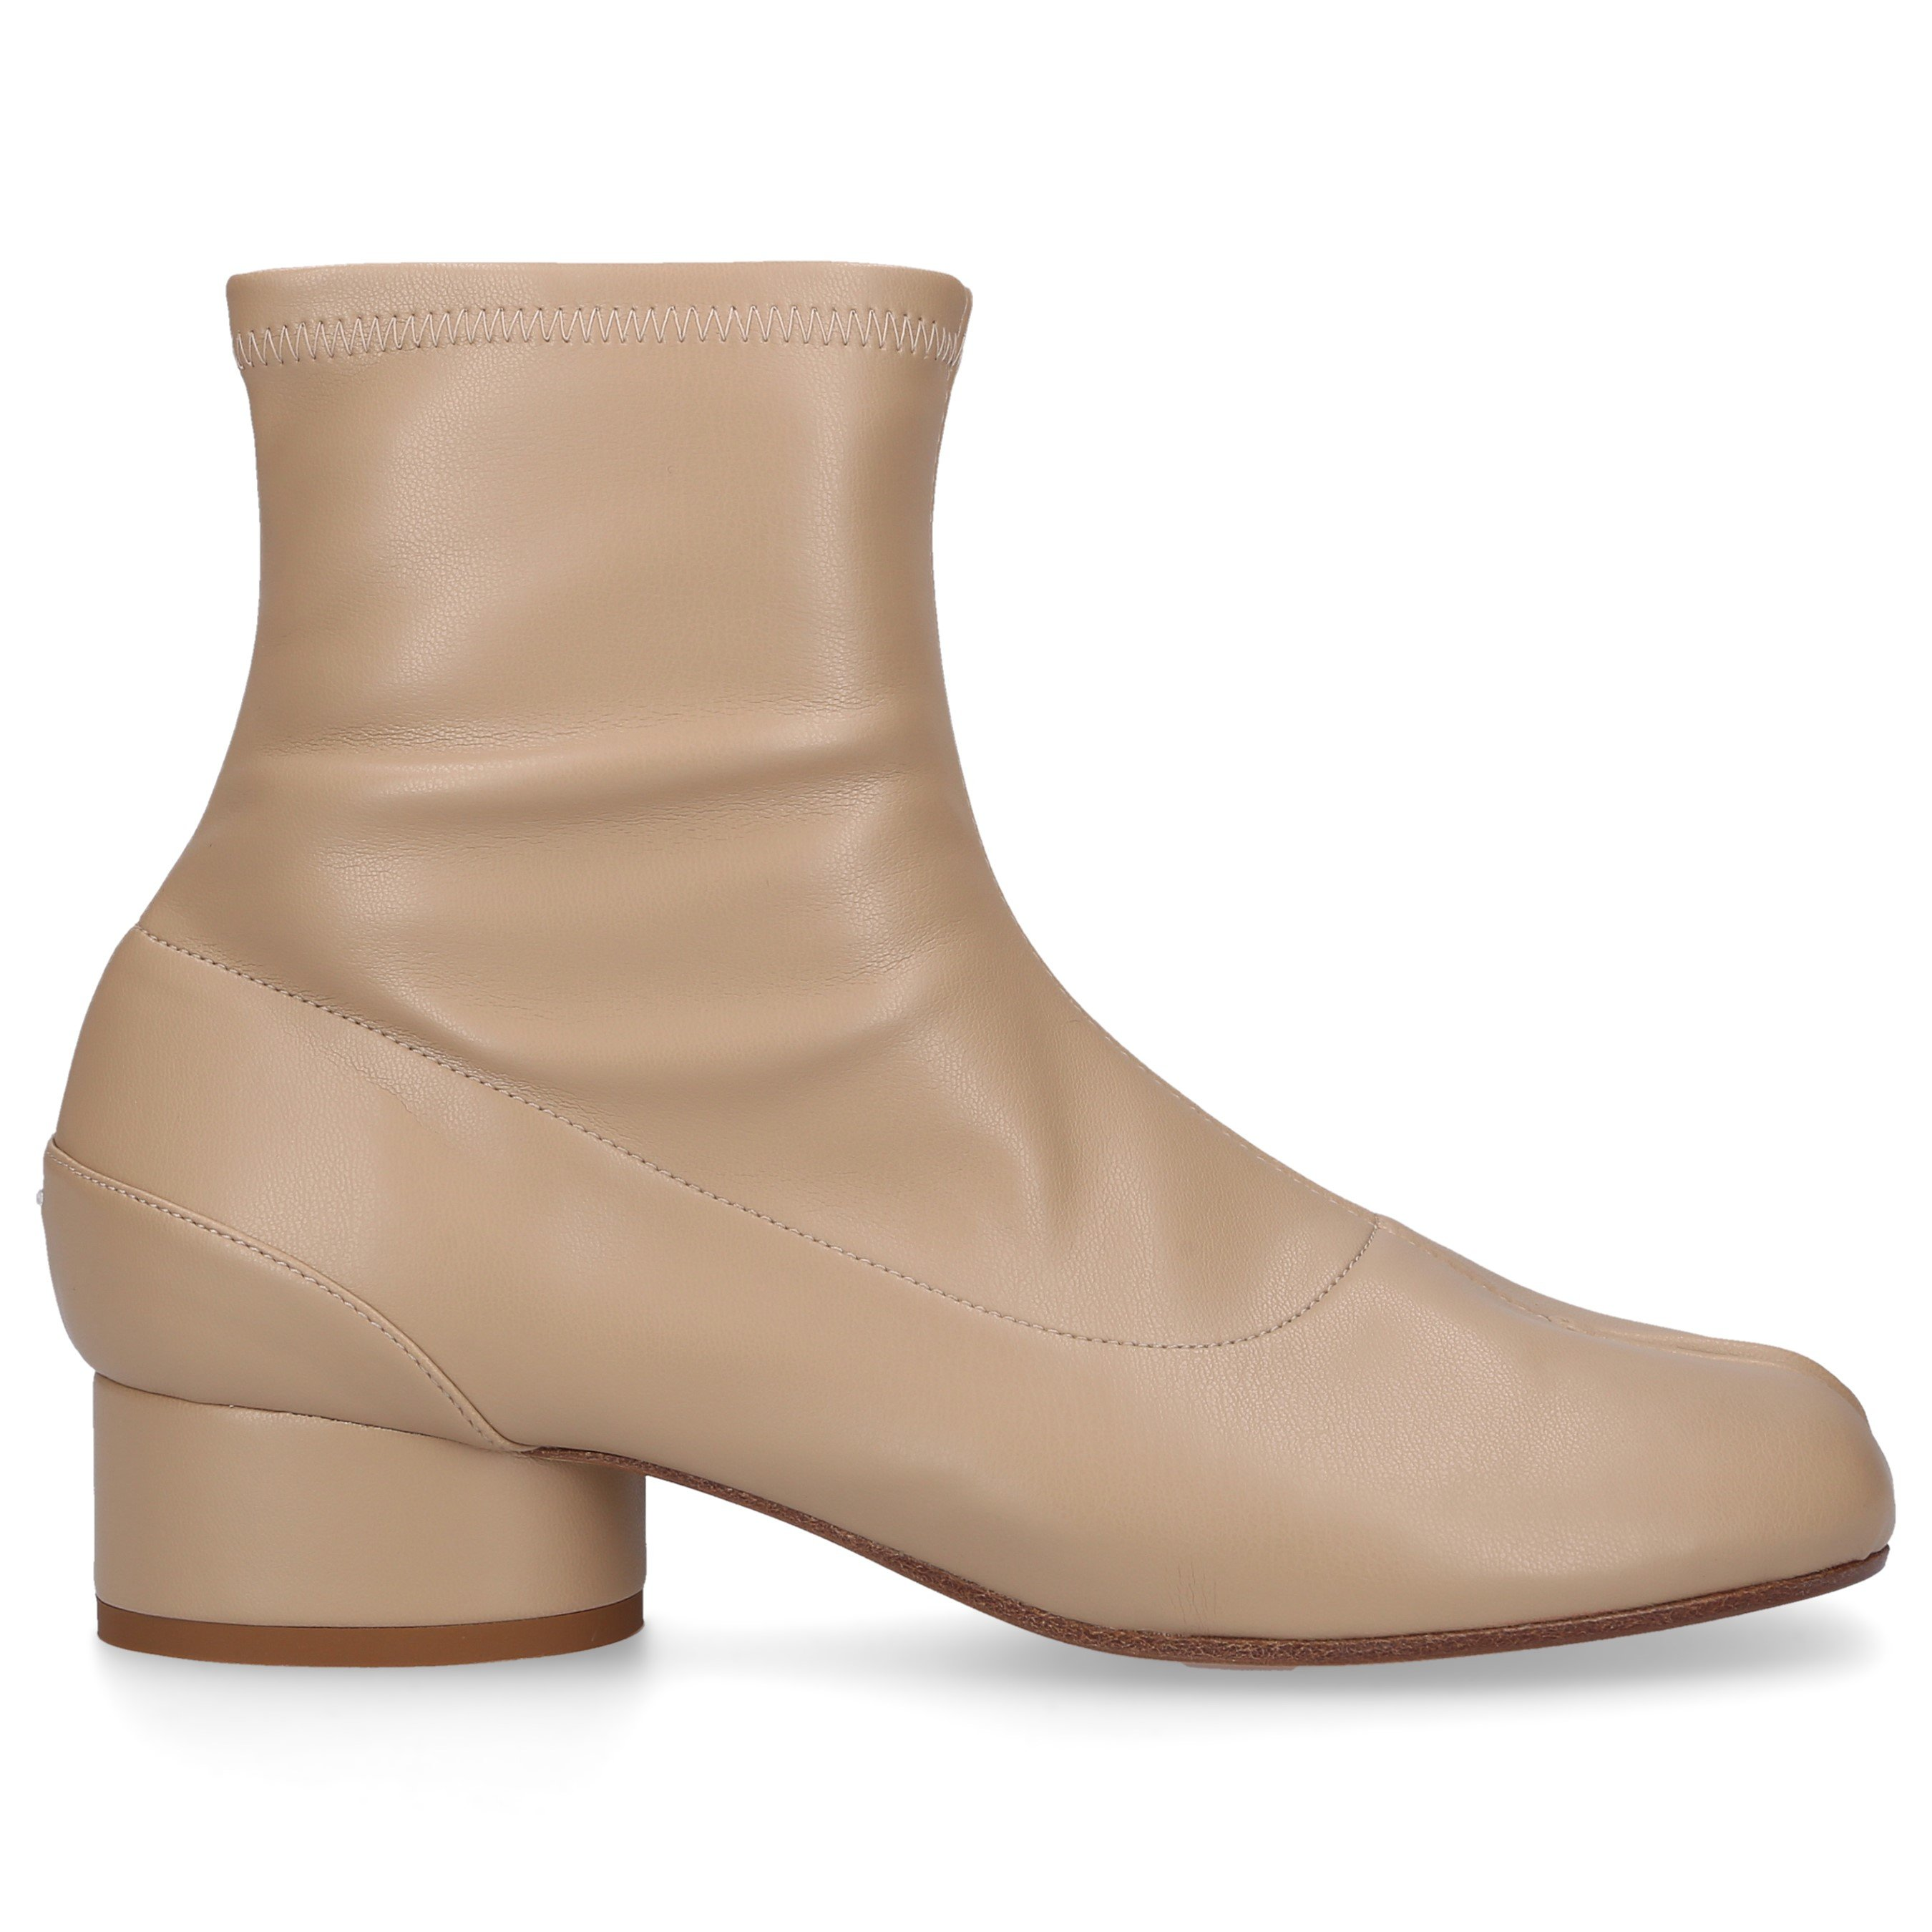 Maison Margiela Wedges ANKLE BOOTS BEIGE TABI